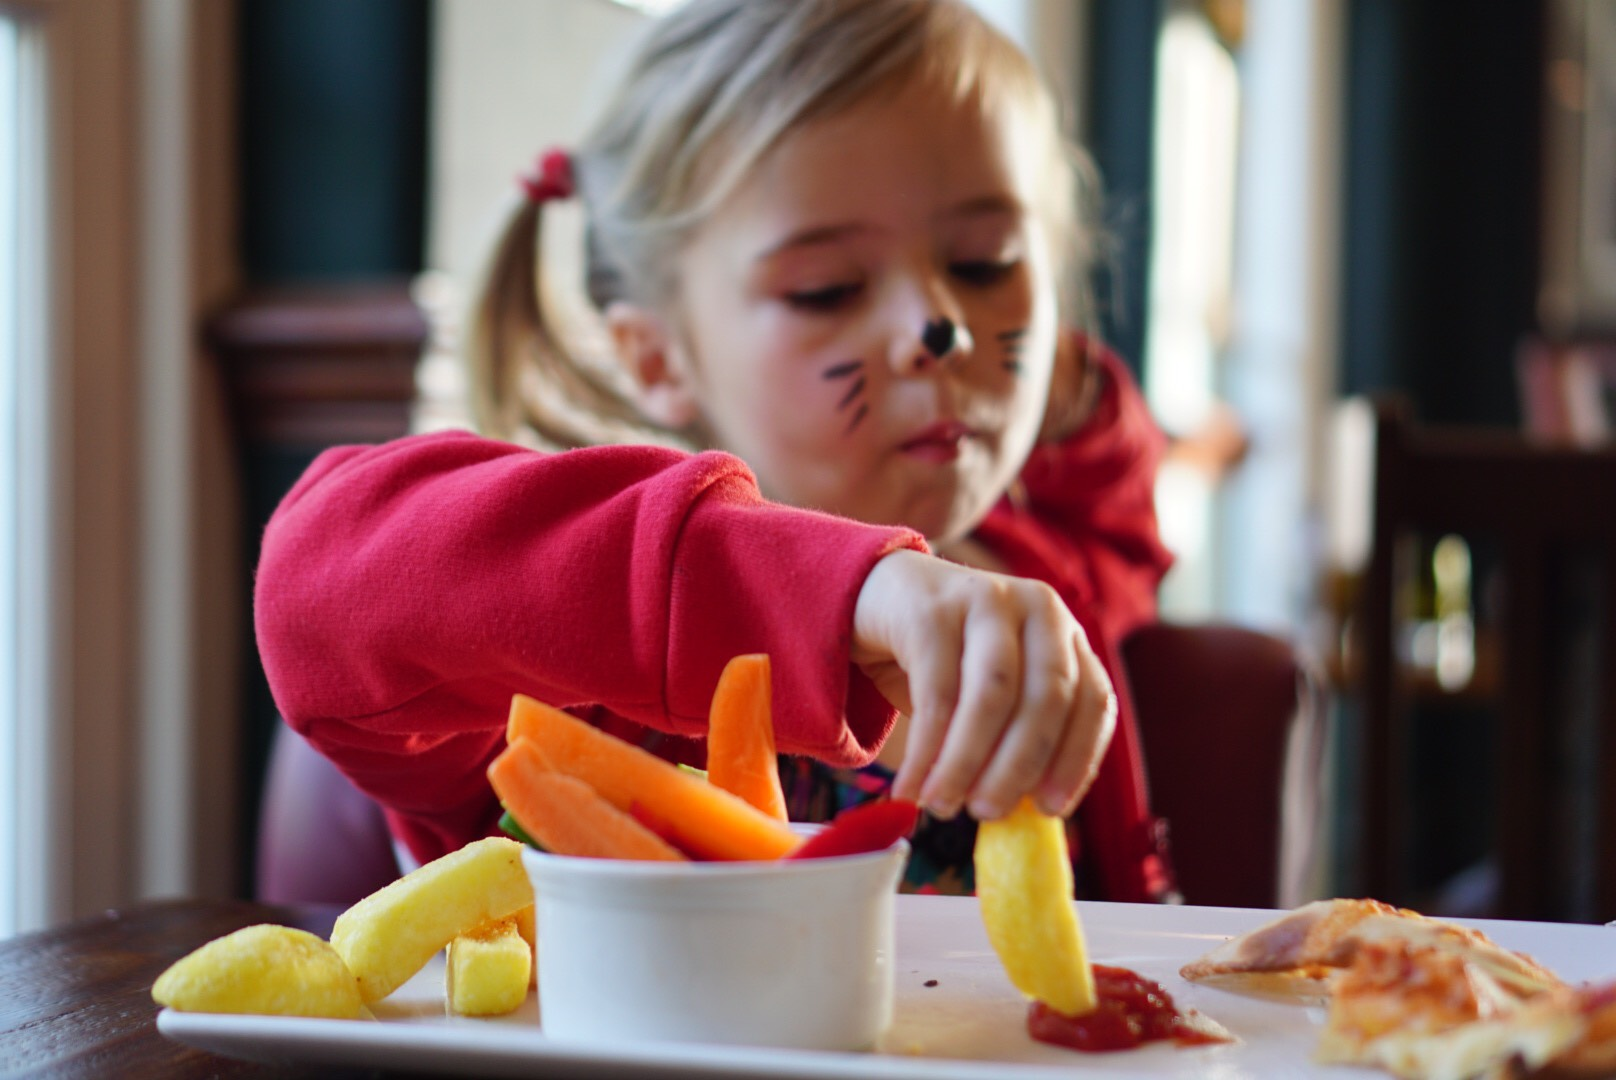 Child friendly places to eat in Cheshire. The Cheshire Cat